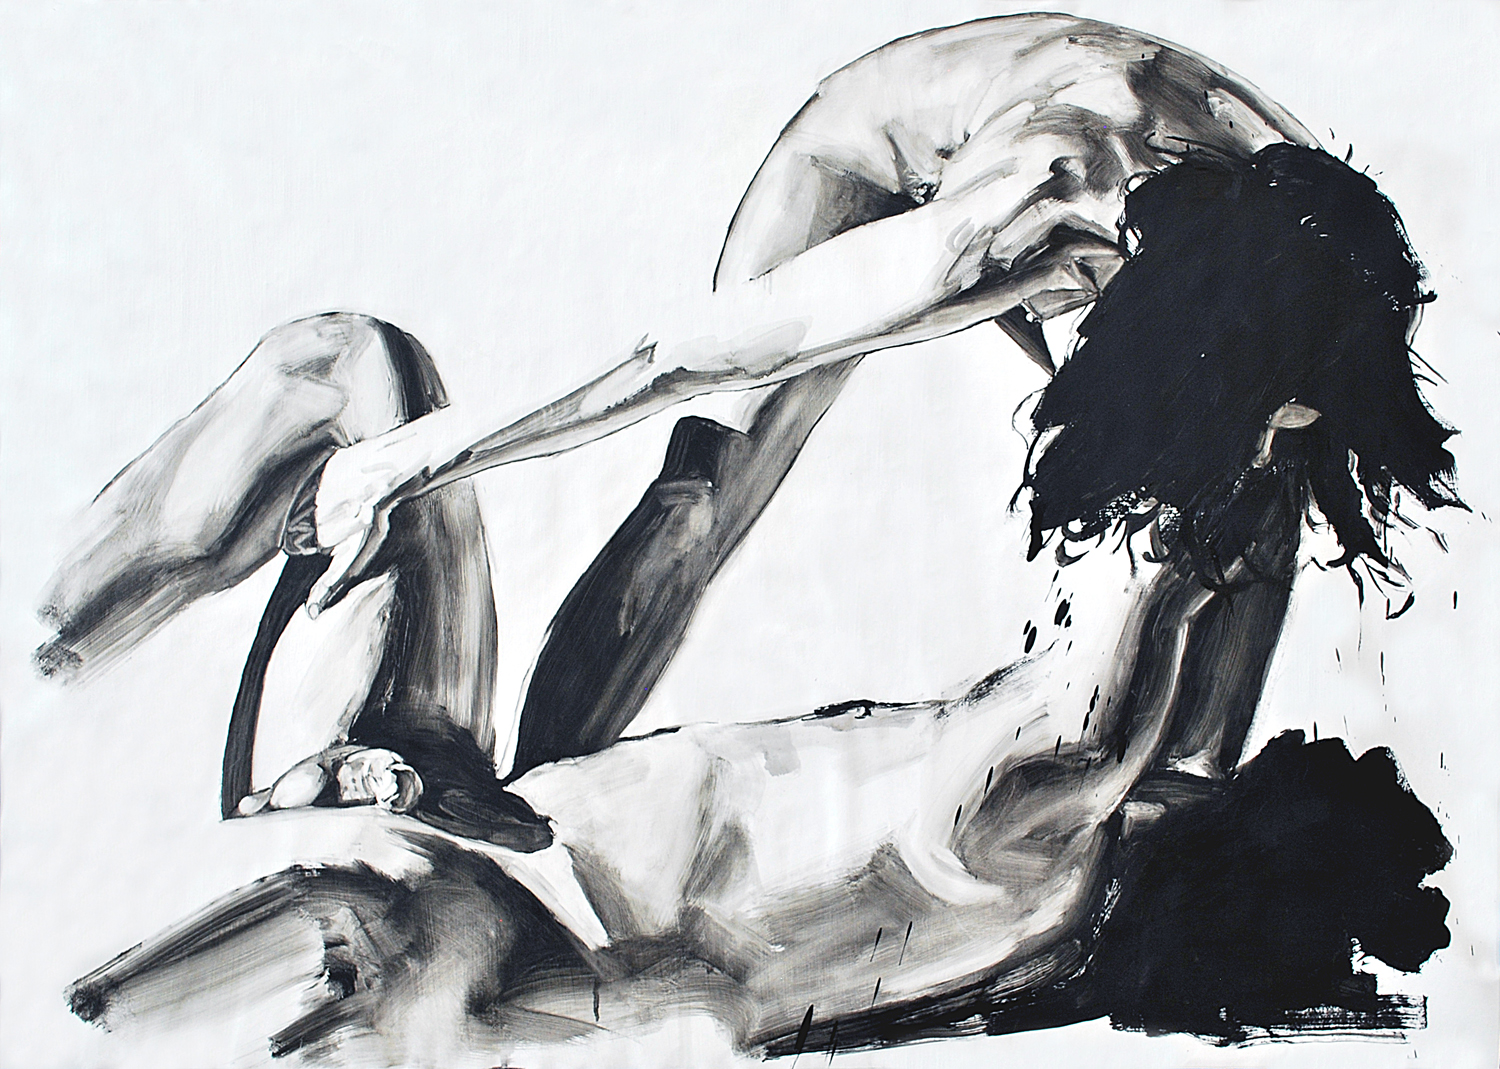 SLANT, 2015, oil on paper, 30 x 42 inches (72.6 x 106.7 cm).